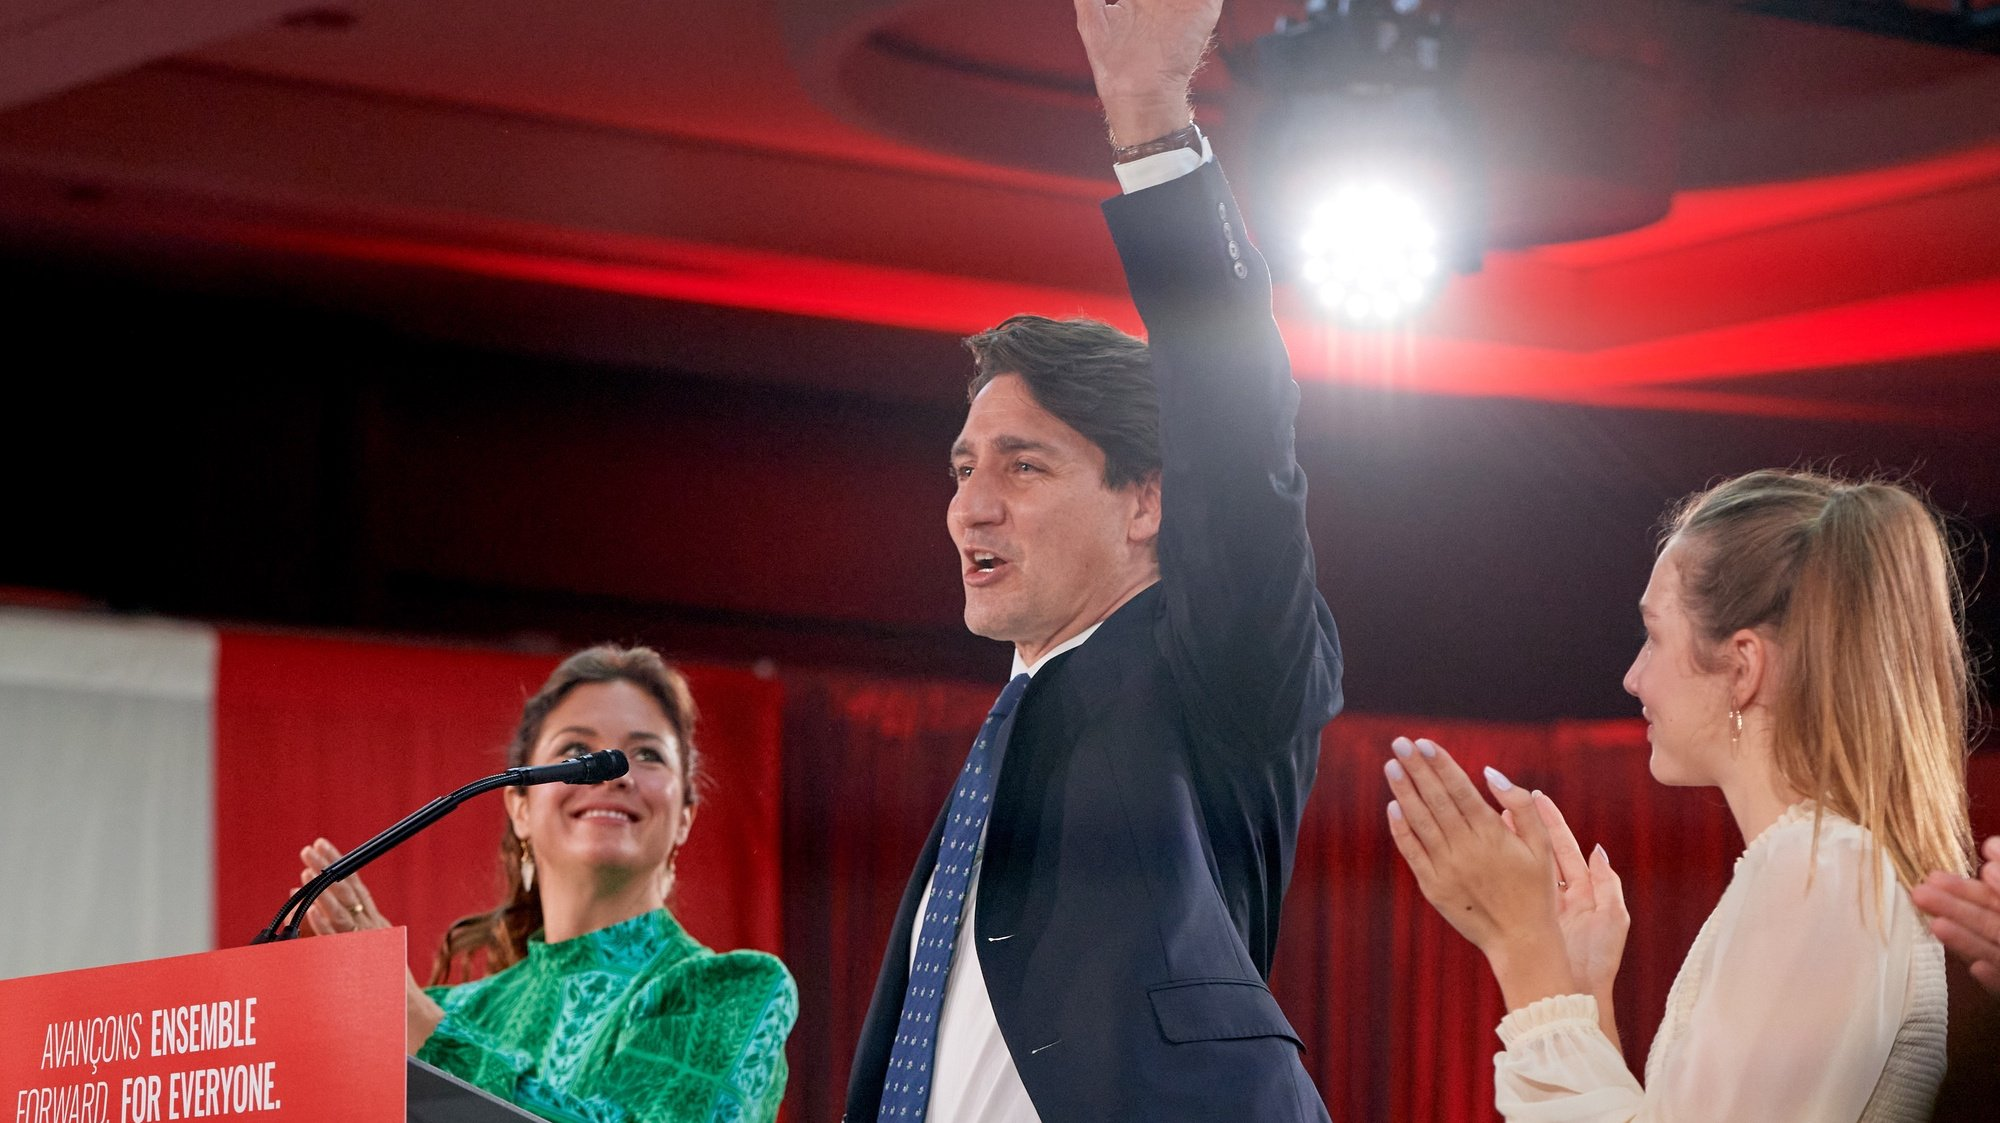 epa09478683 Canadian Prime Minister and Liberal Party leader Justin Trudeau (C), next to his wife Sophie Gregoire (L) and daughter Ella Grace (R), waves to supporters as he celebrates his election victory in Montreal, Quebec, Canada, 20 September 2021. Liberal Party leader Justin Trudeau retained his position as Canadian prime minister in the federal election but will be forced to form a minority government.  EPA/ERIC BOLTE